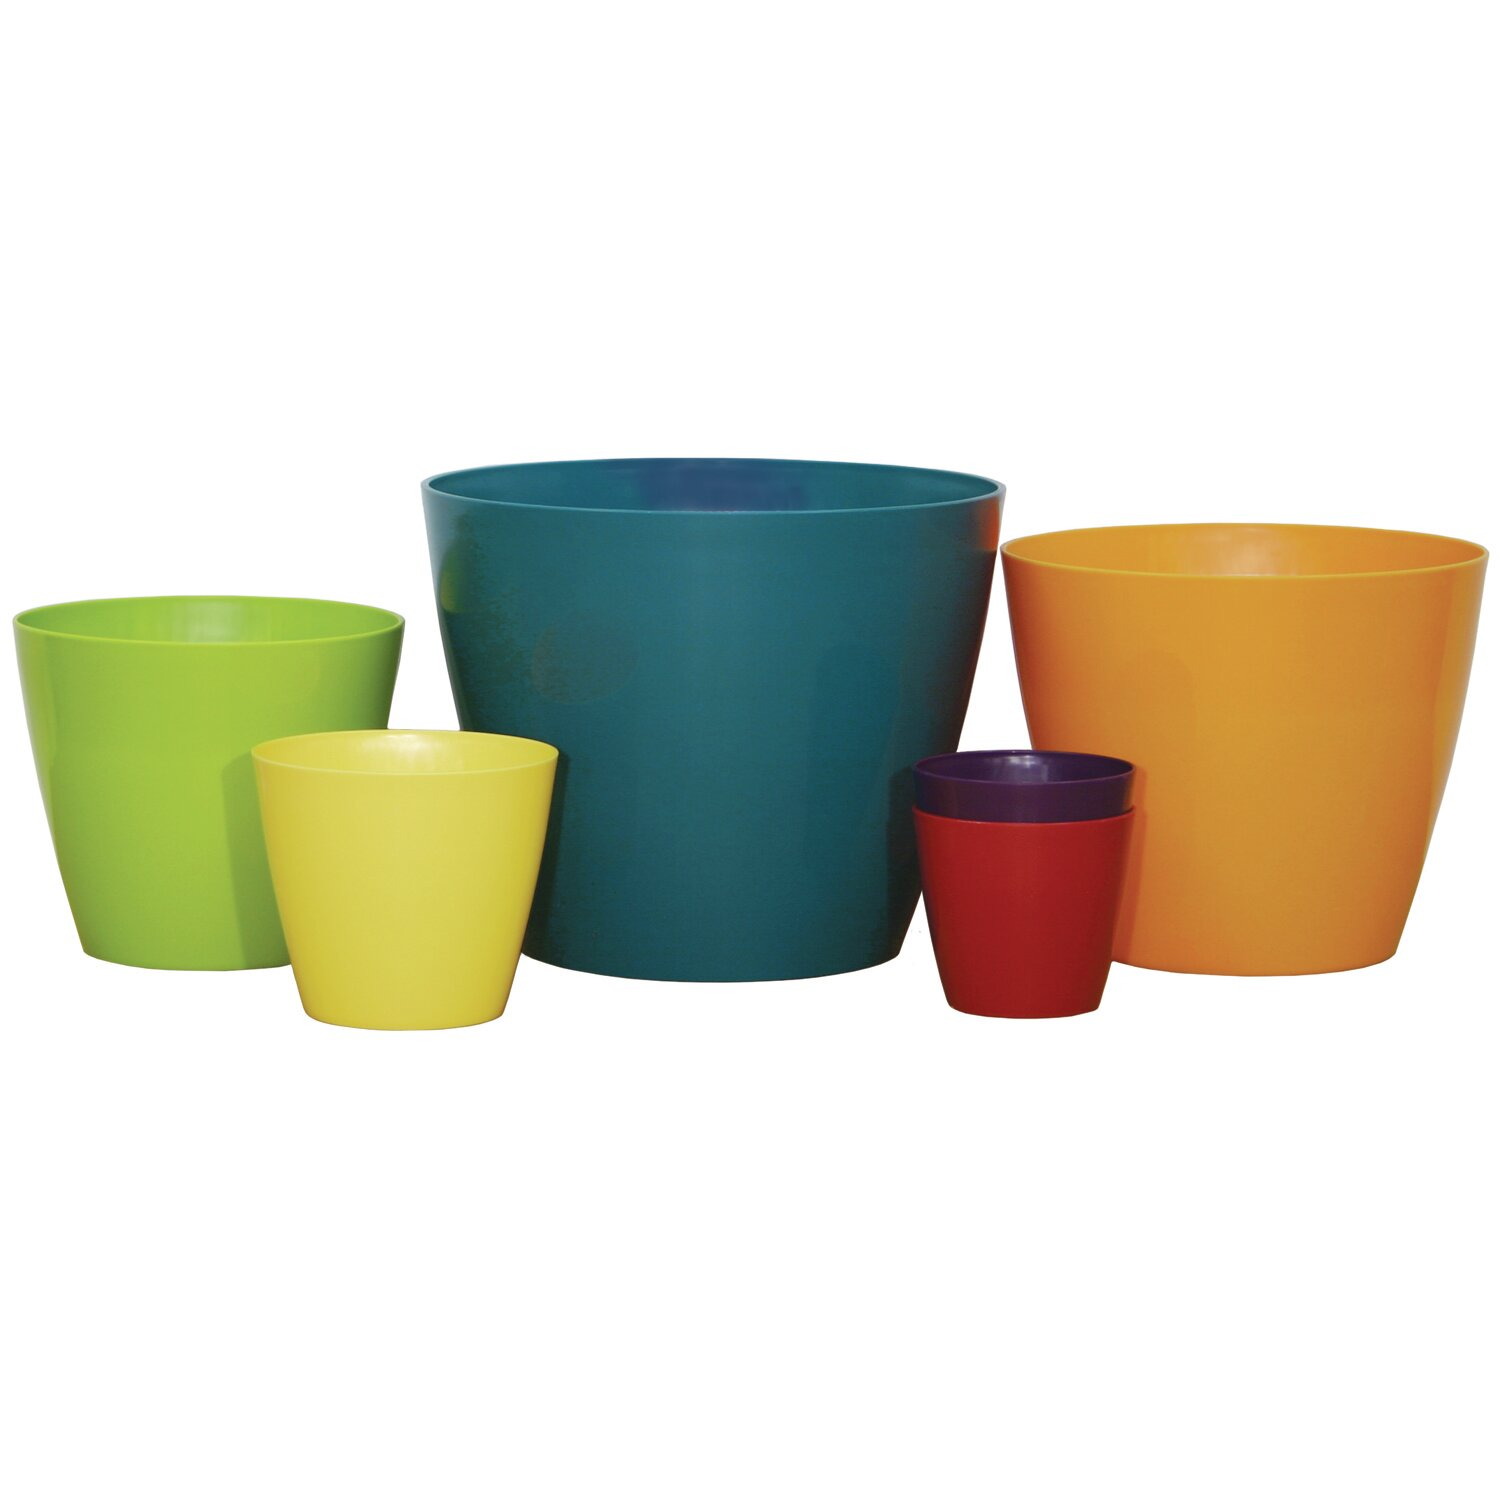 Wayfair Basics Wayfair Basics Round Planter Set Amp Reviews